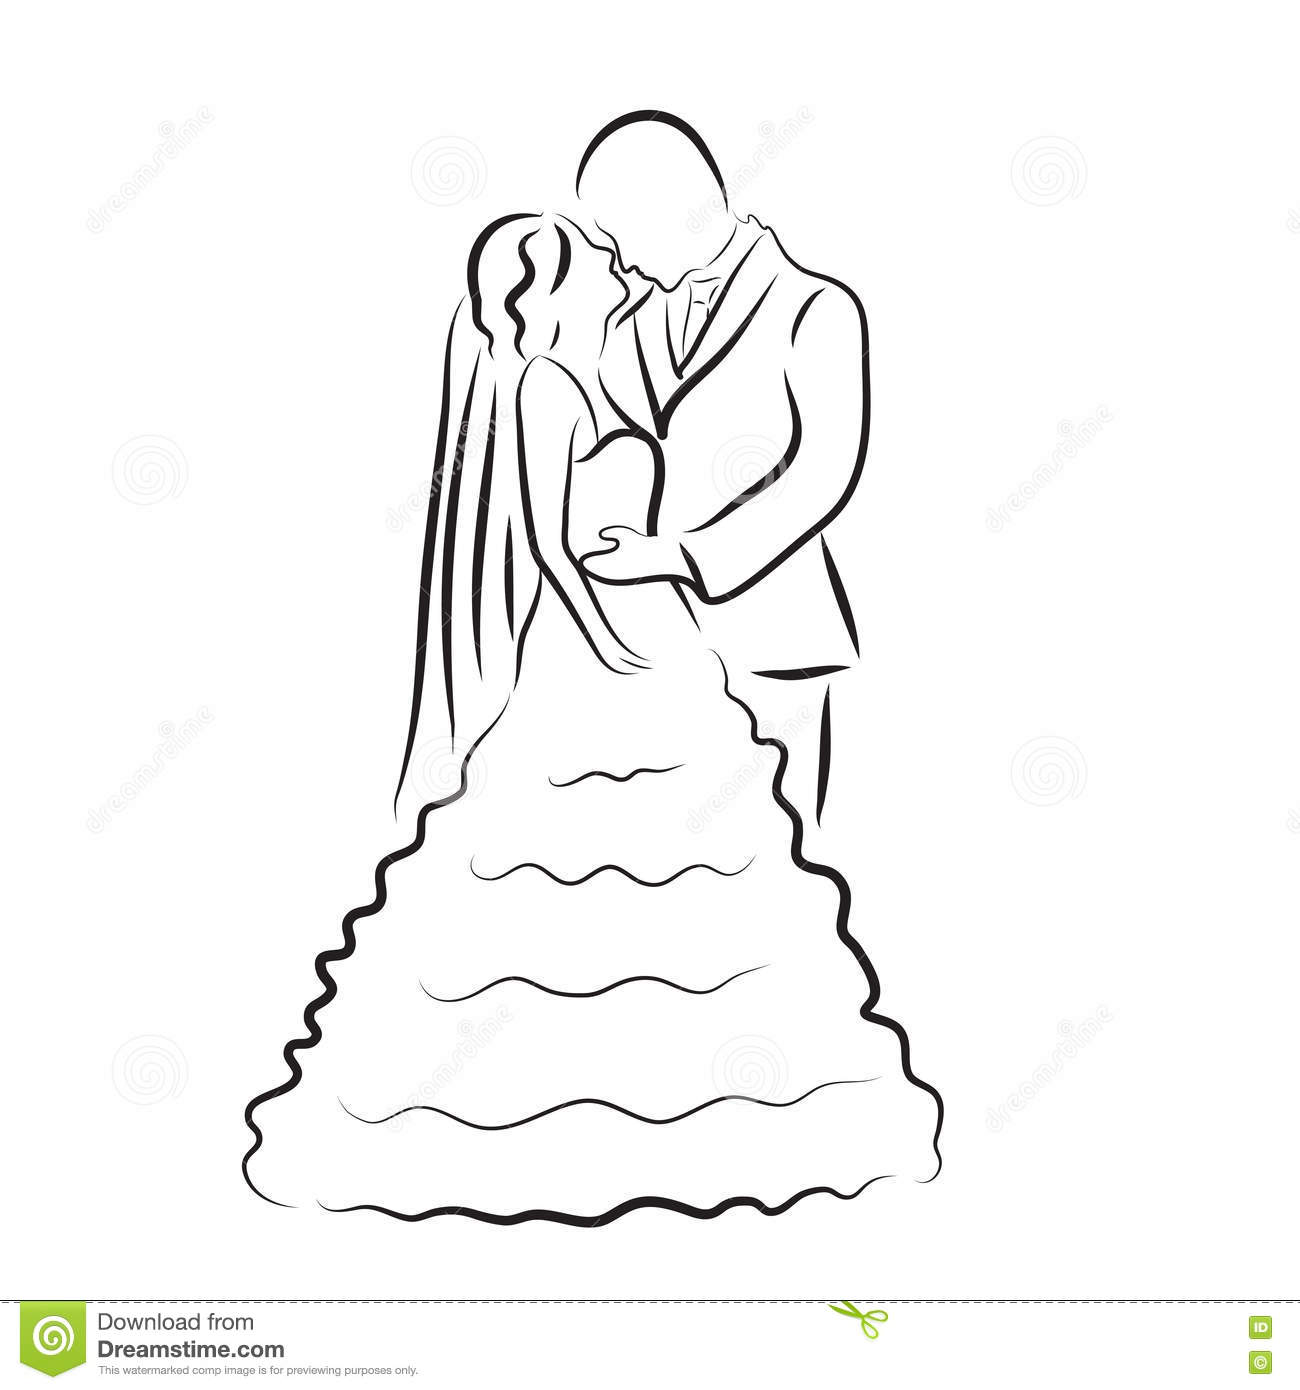 Silhouette Of Bride And Groom Newlyweds Sketch Hand